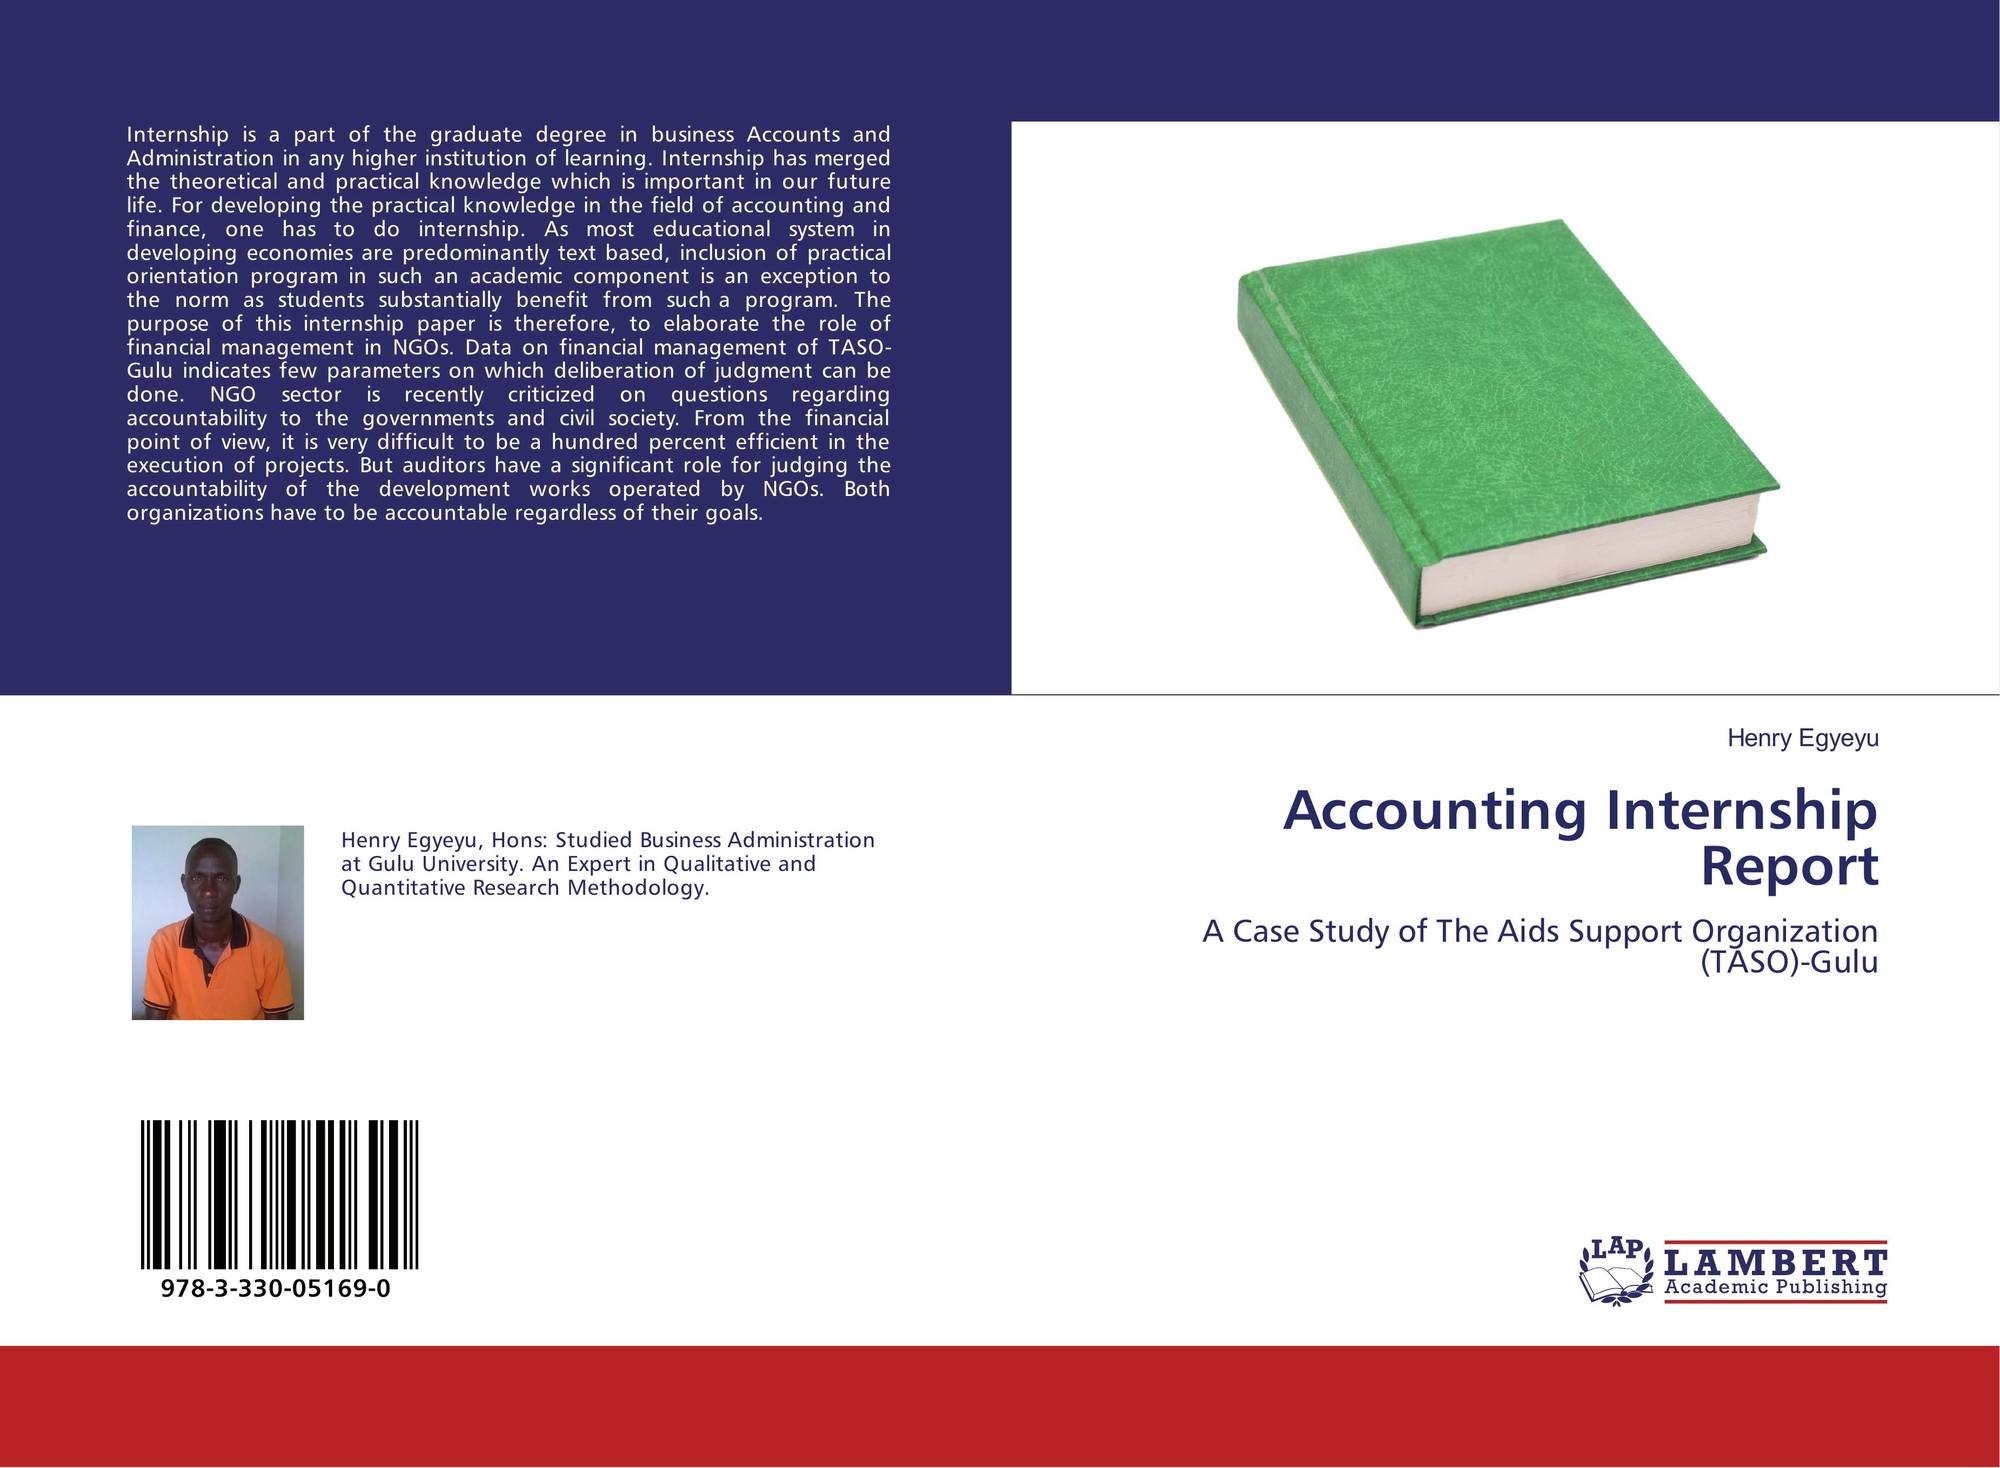 accounting internship report Accounting internship faqs what is the duration of the compulsory internship bba (acc) internship report to biz career services within two weeks of completing the internship to determine if you have satisfactorily completed the internship requirement.